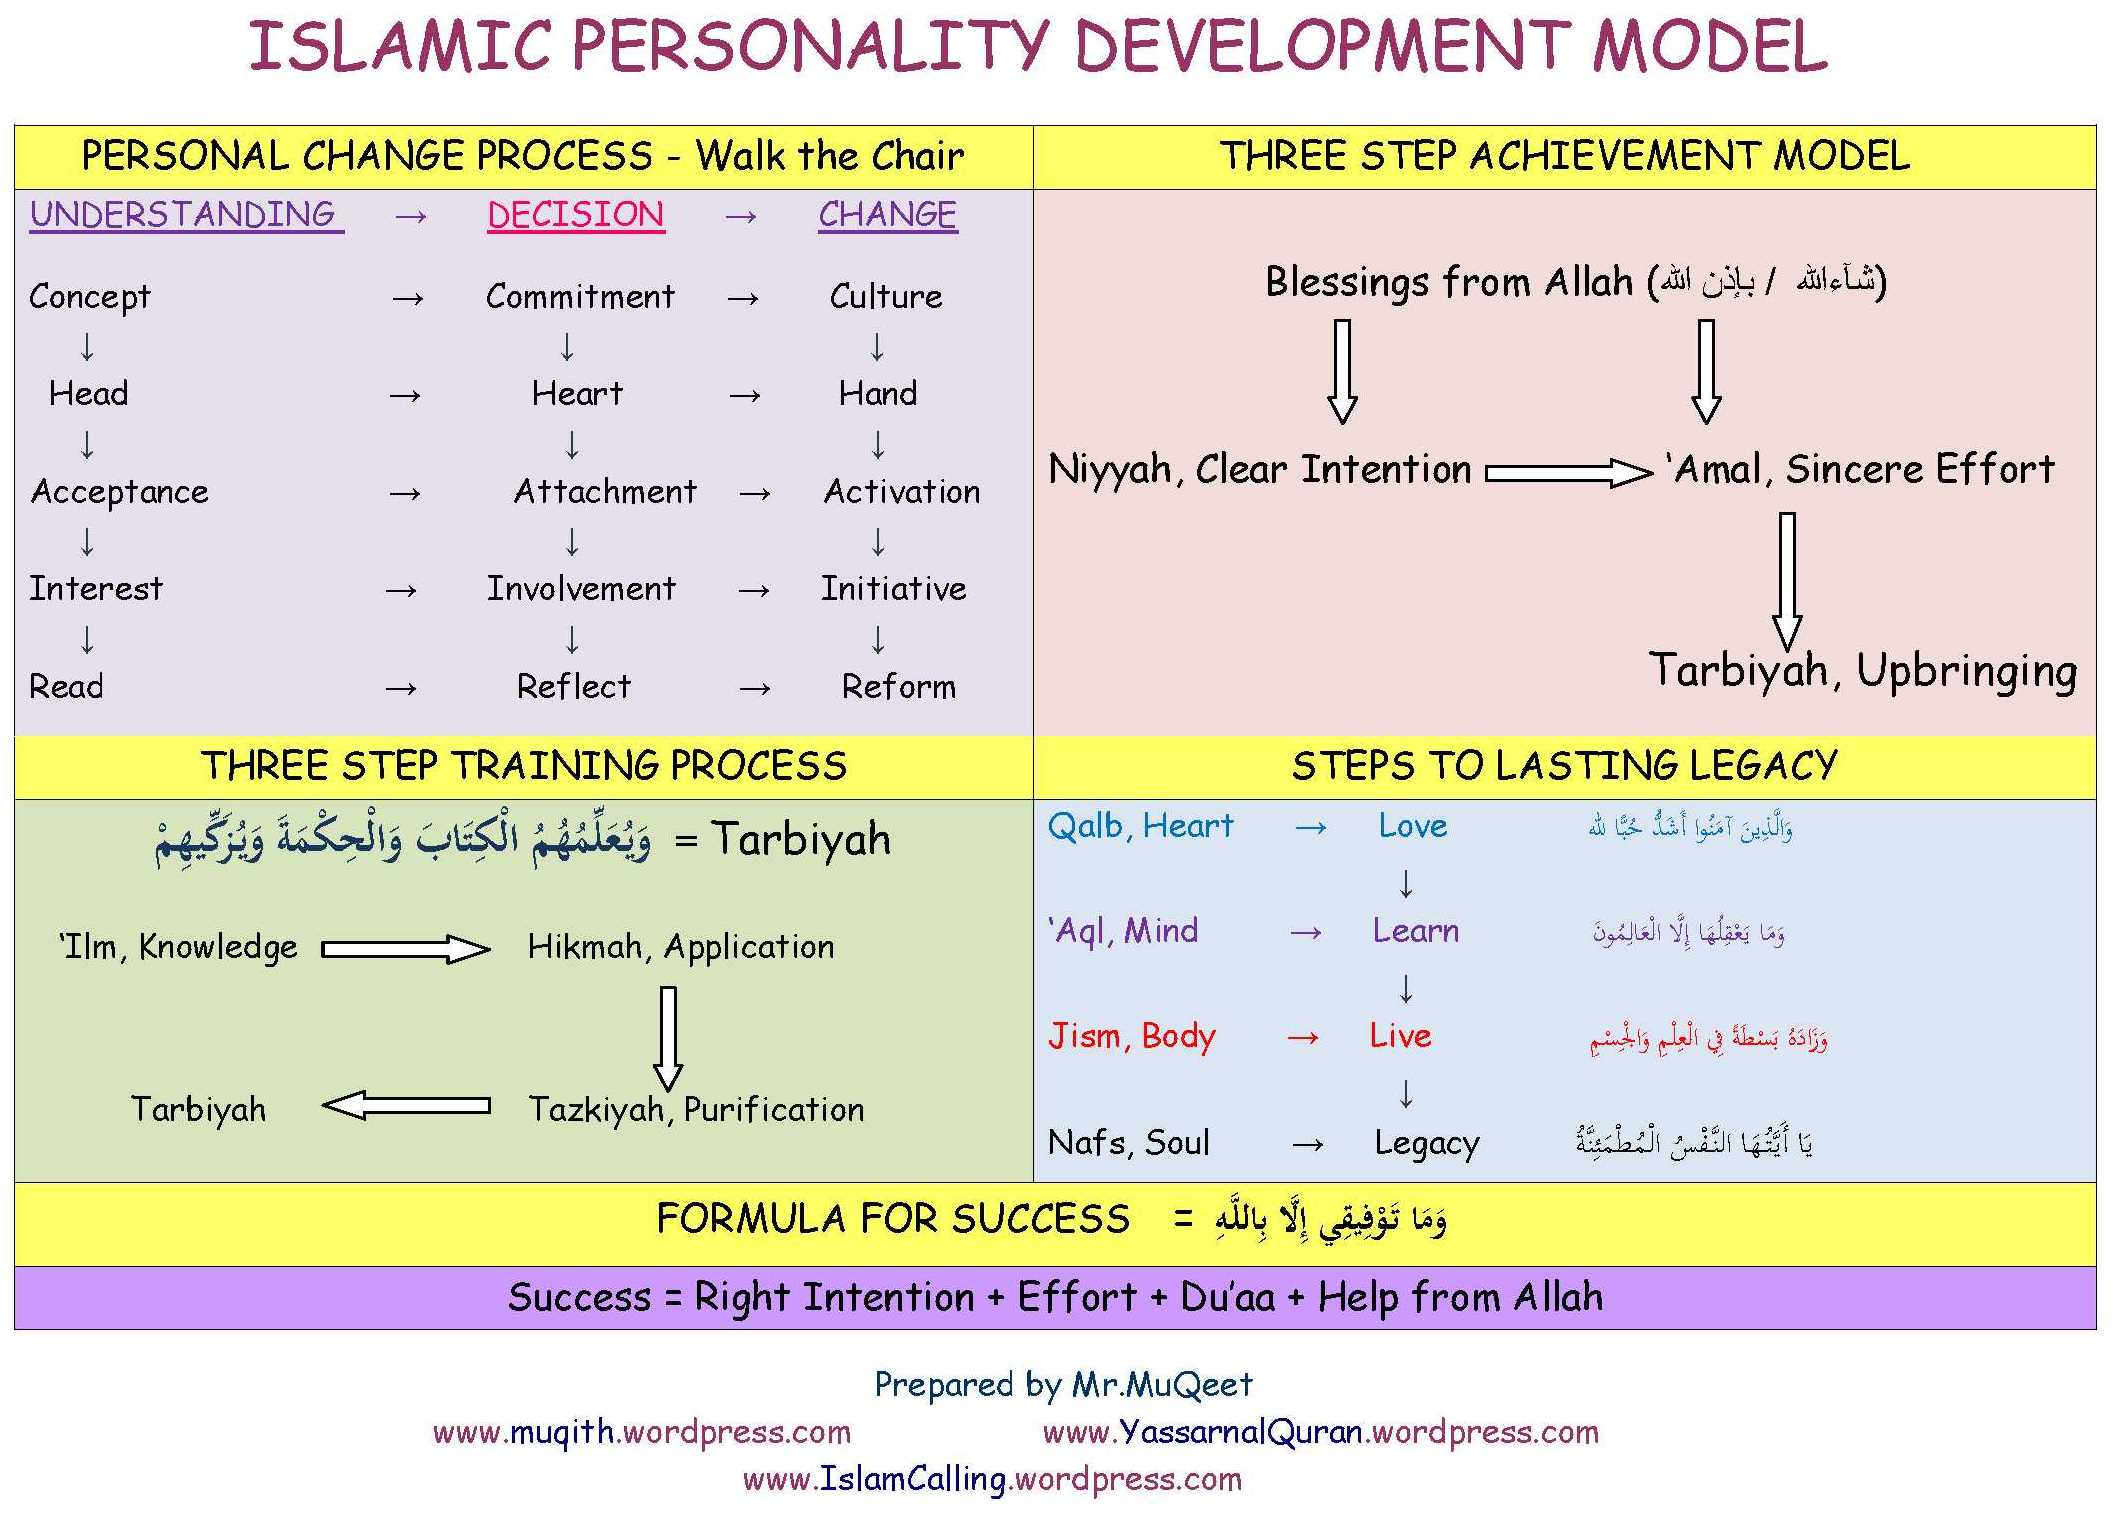 Islamic Personality Development Model « YasSarNalQuR'aN